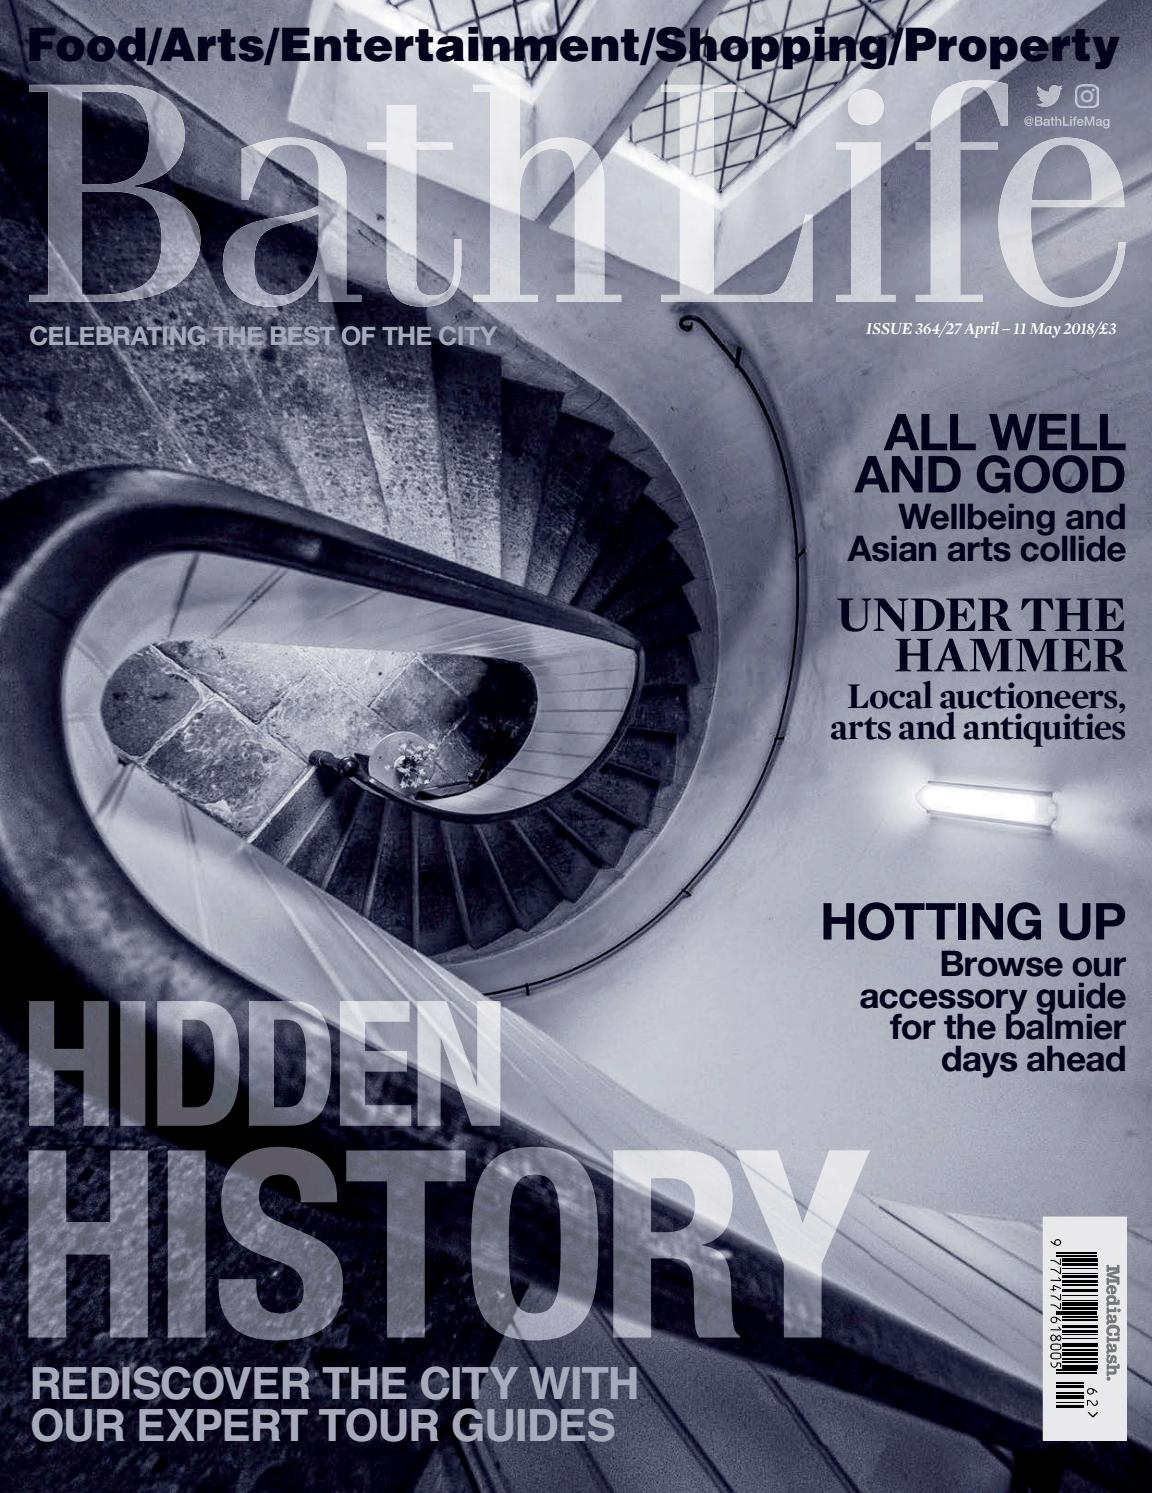 Bath Life Issue 364 By Mediaclash Issuu Simple Clap Operated Stairway Light Switch Circuit Homemade